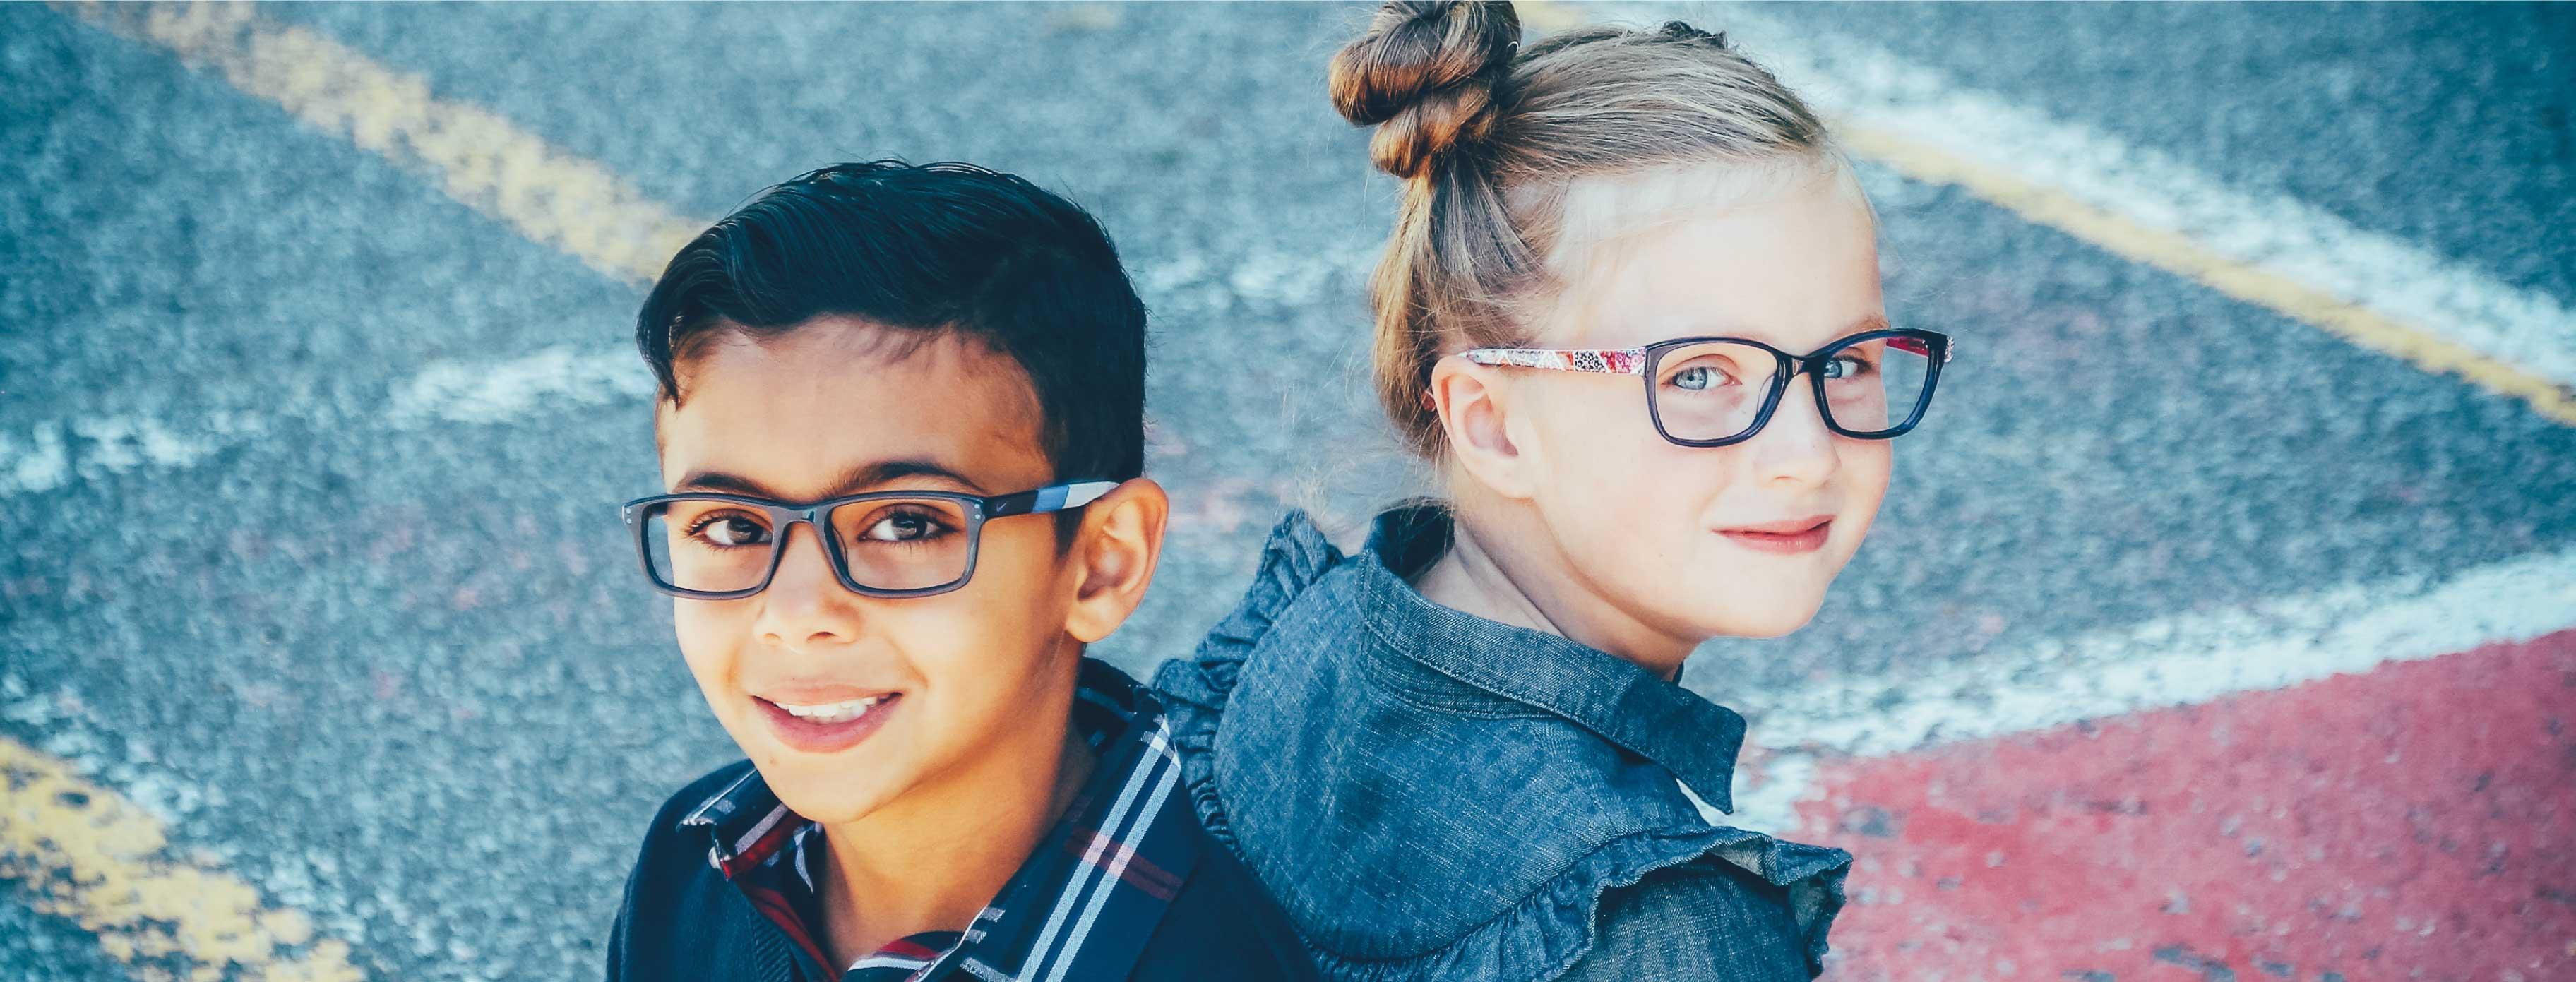 A little boy is alongside a little girl, they both are wearing glasses